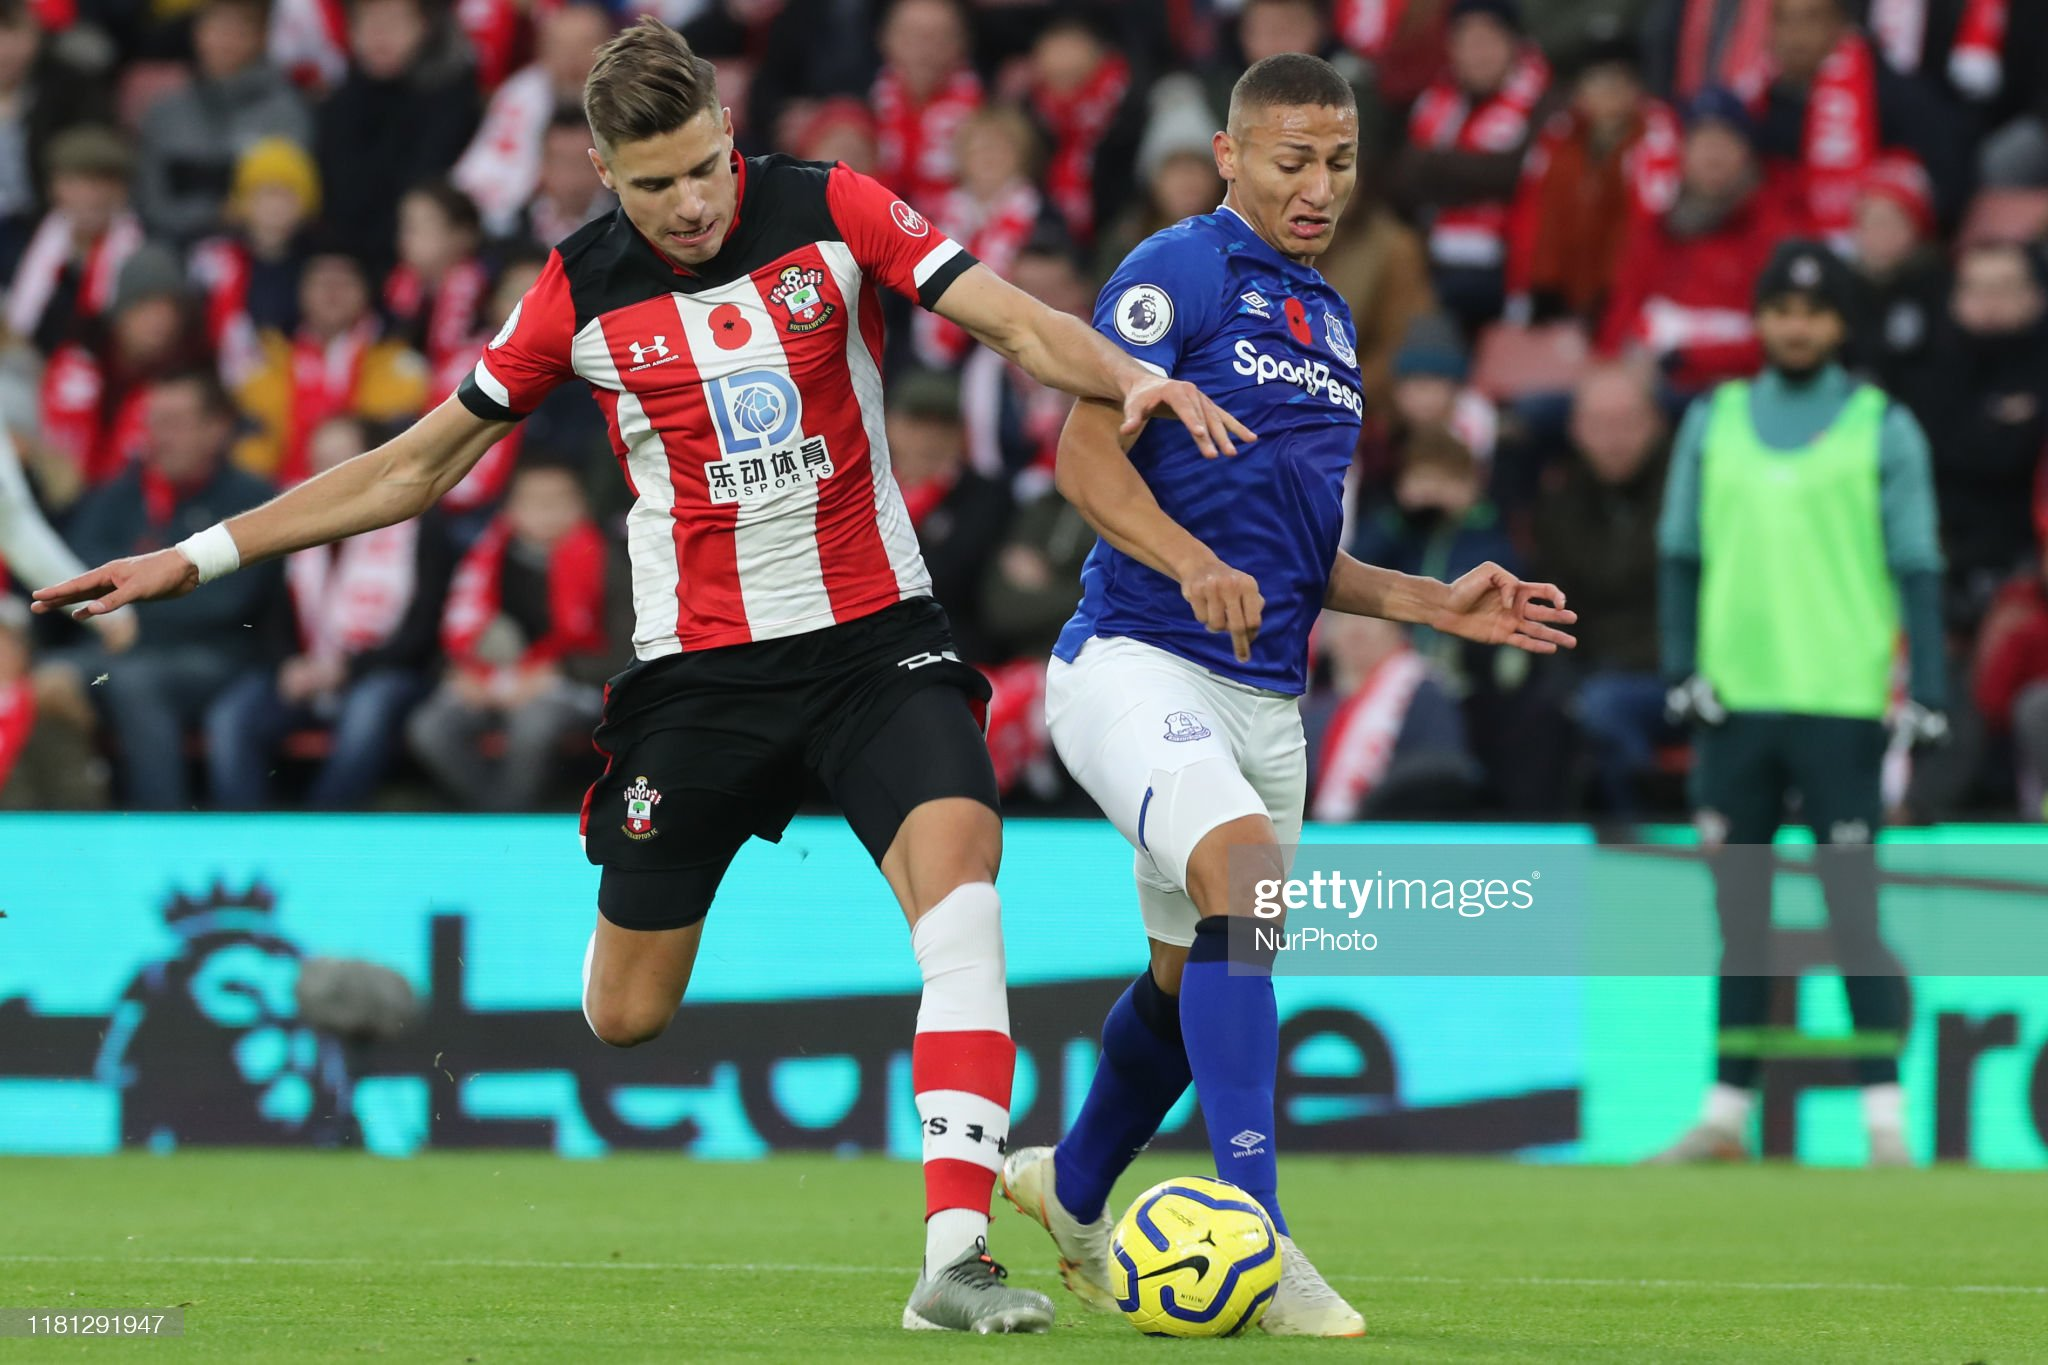 Southampton vs Everton preview, prediction and odds